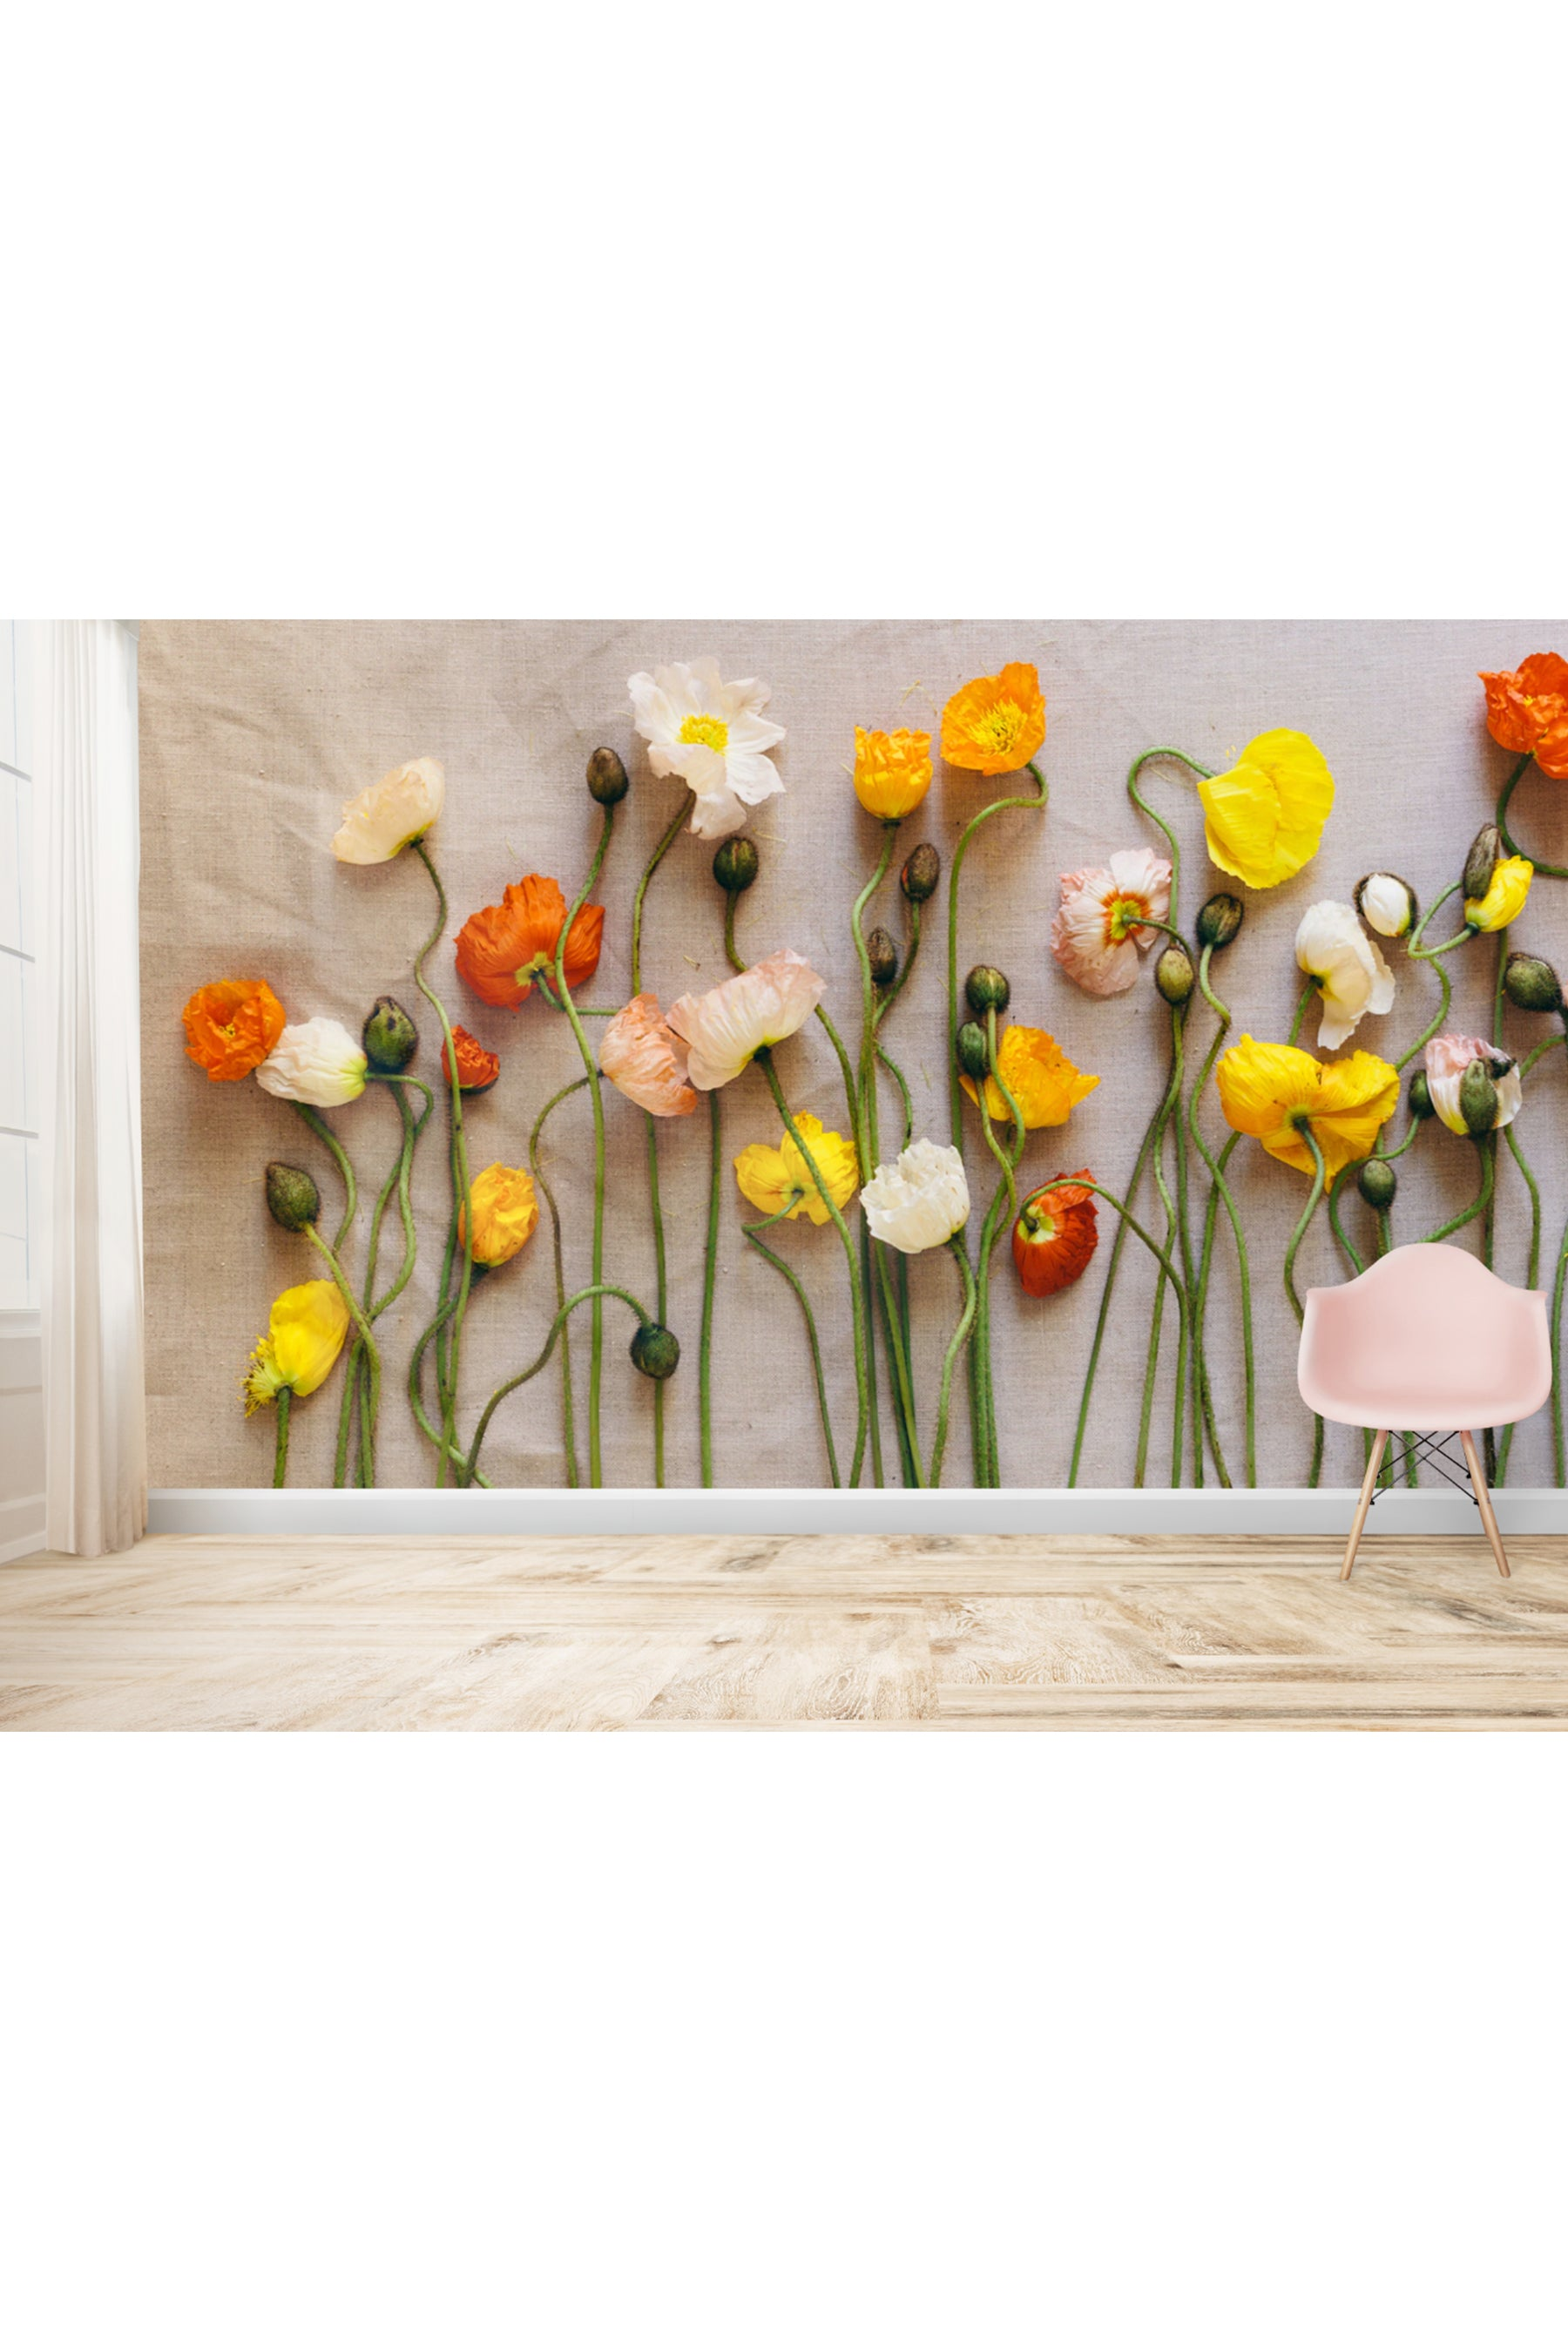 Floral Wallpaper NZ / Custom Wallpaper NZ / Designer Wallpaper NZ / Annah Stretton NZ